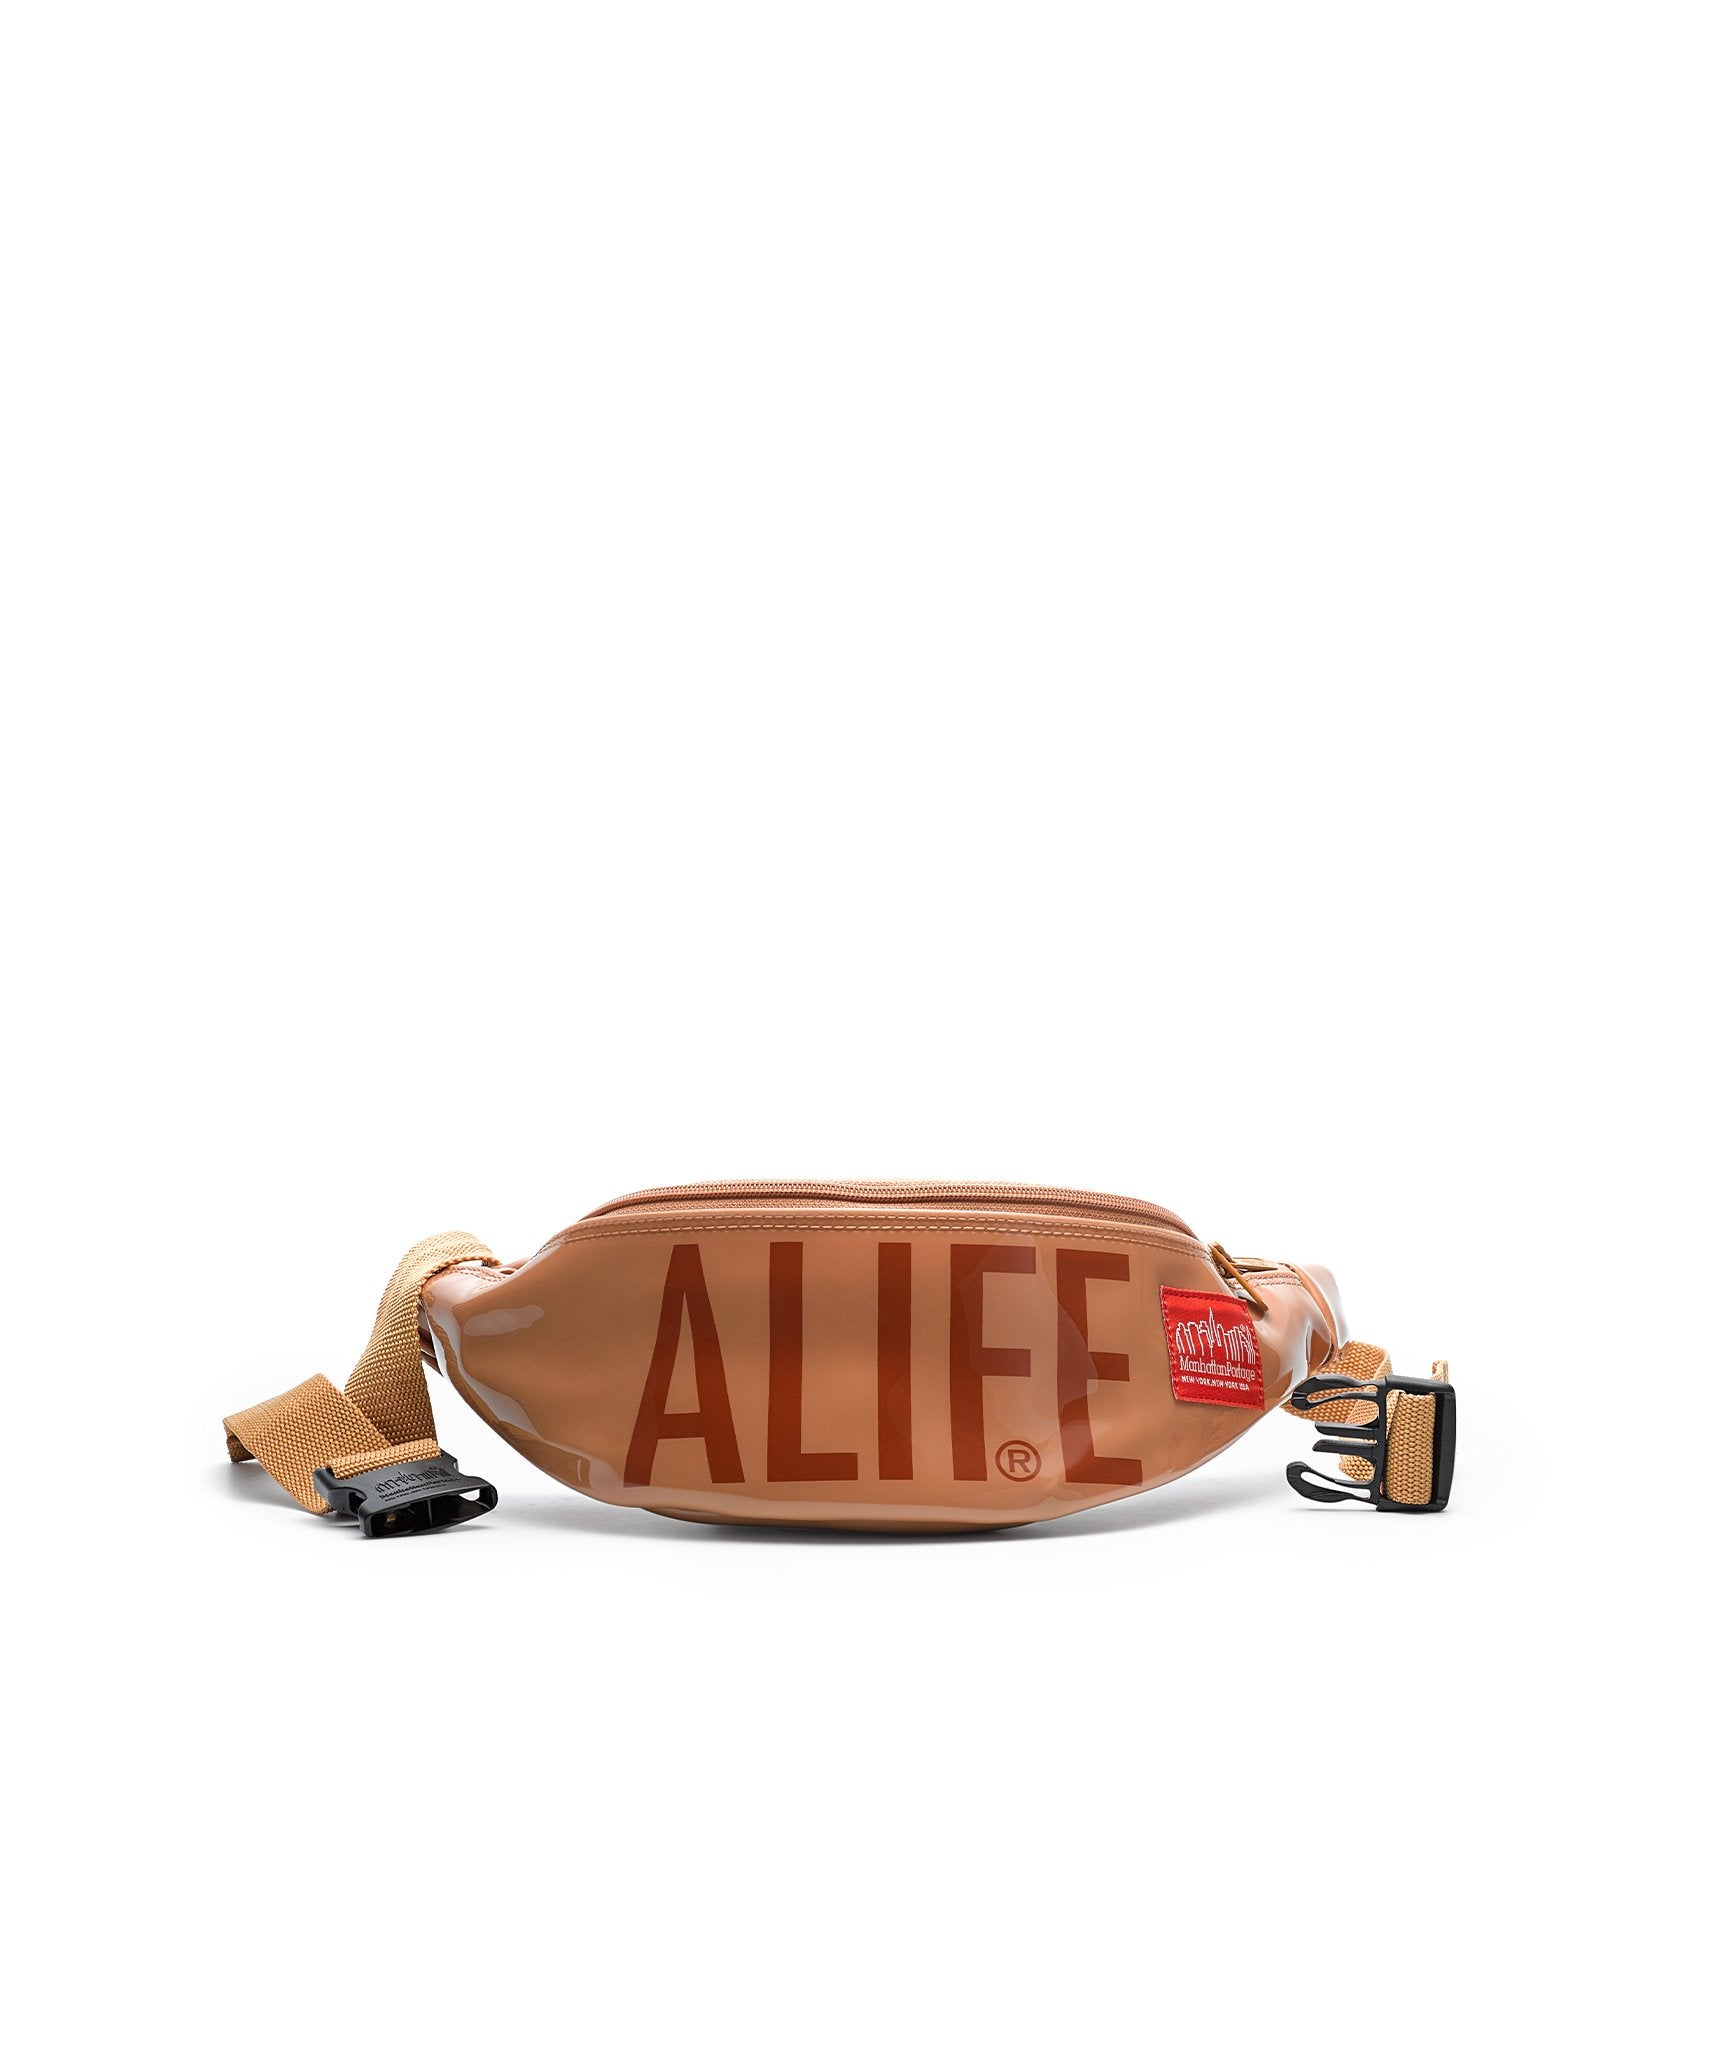 Alife x Manhattan Portage Waistbag in Brown Vinyl